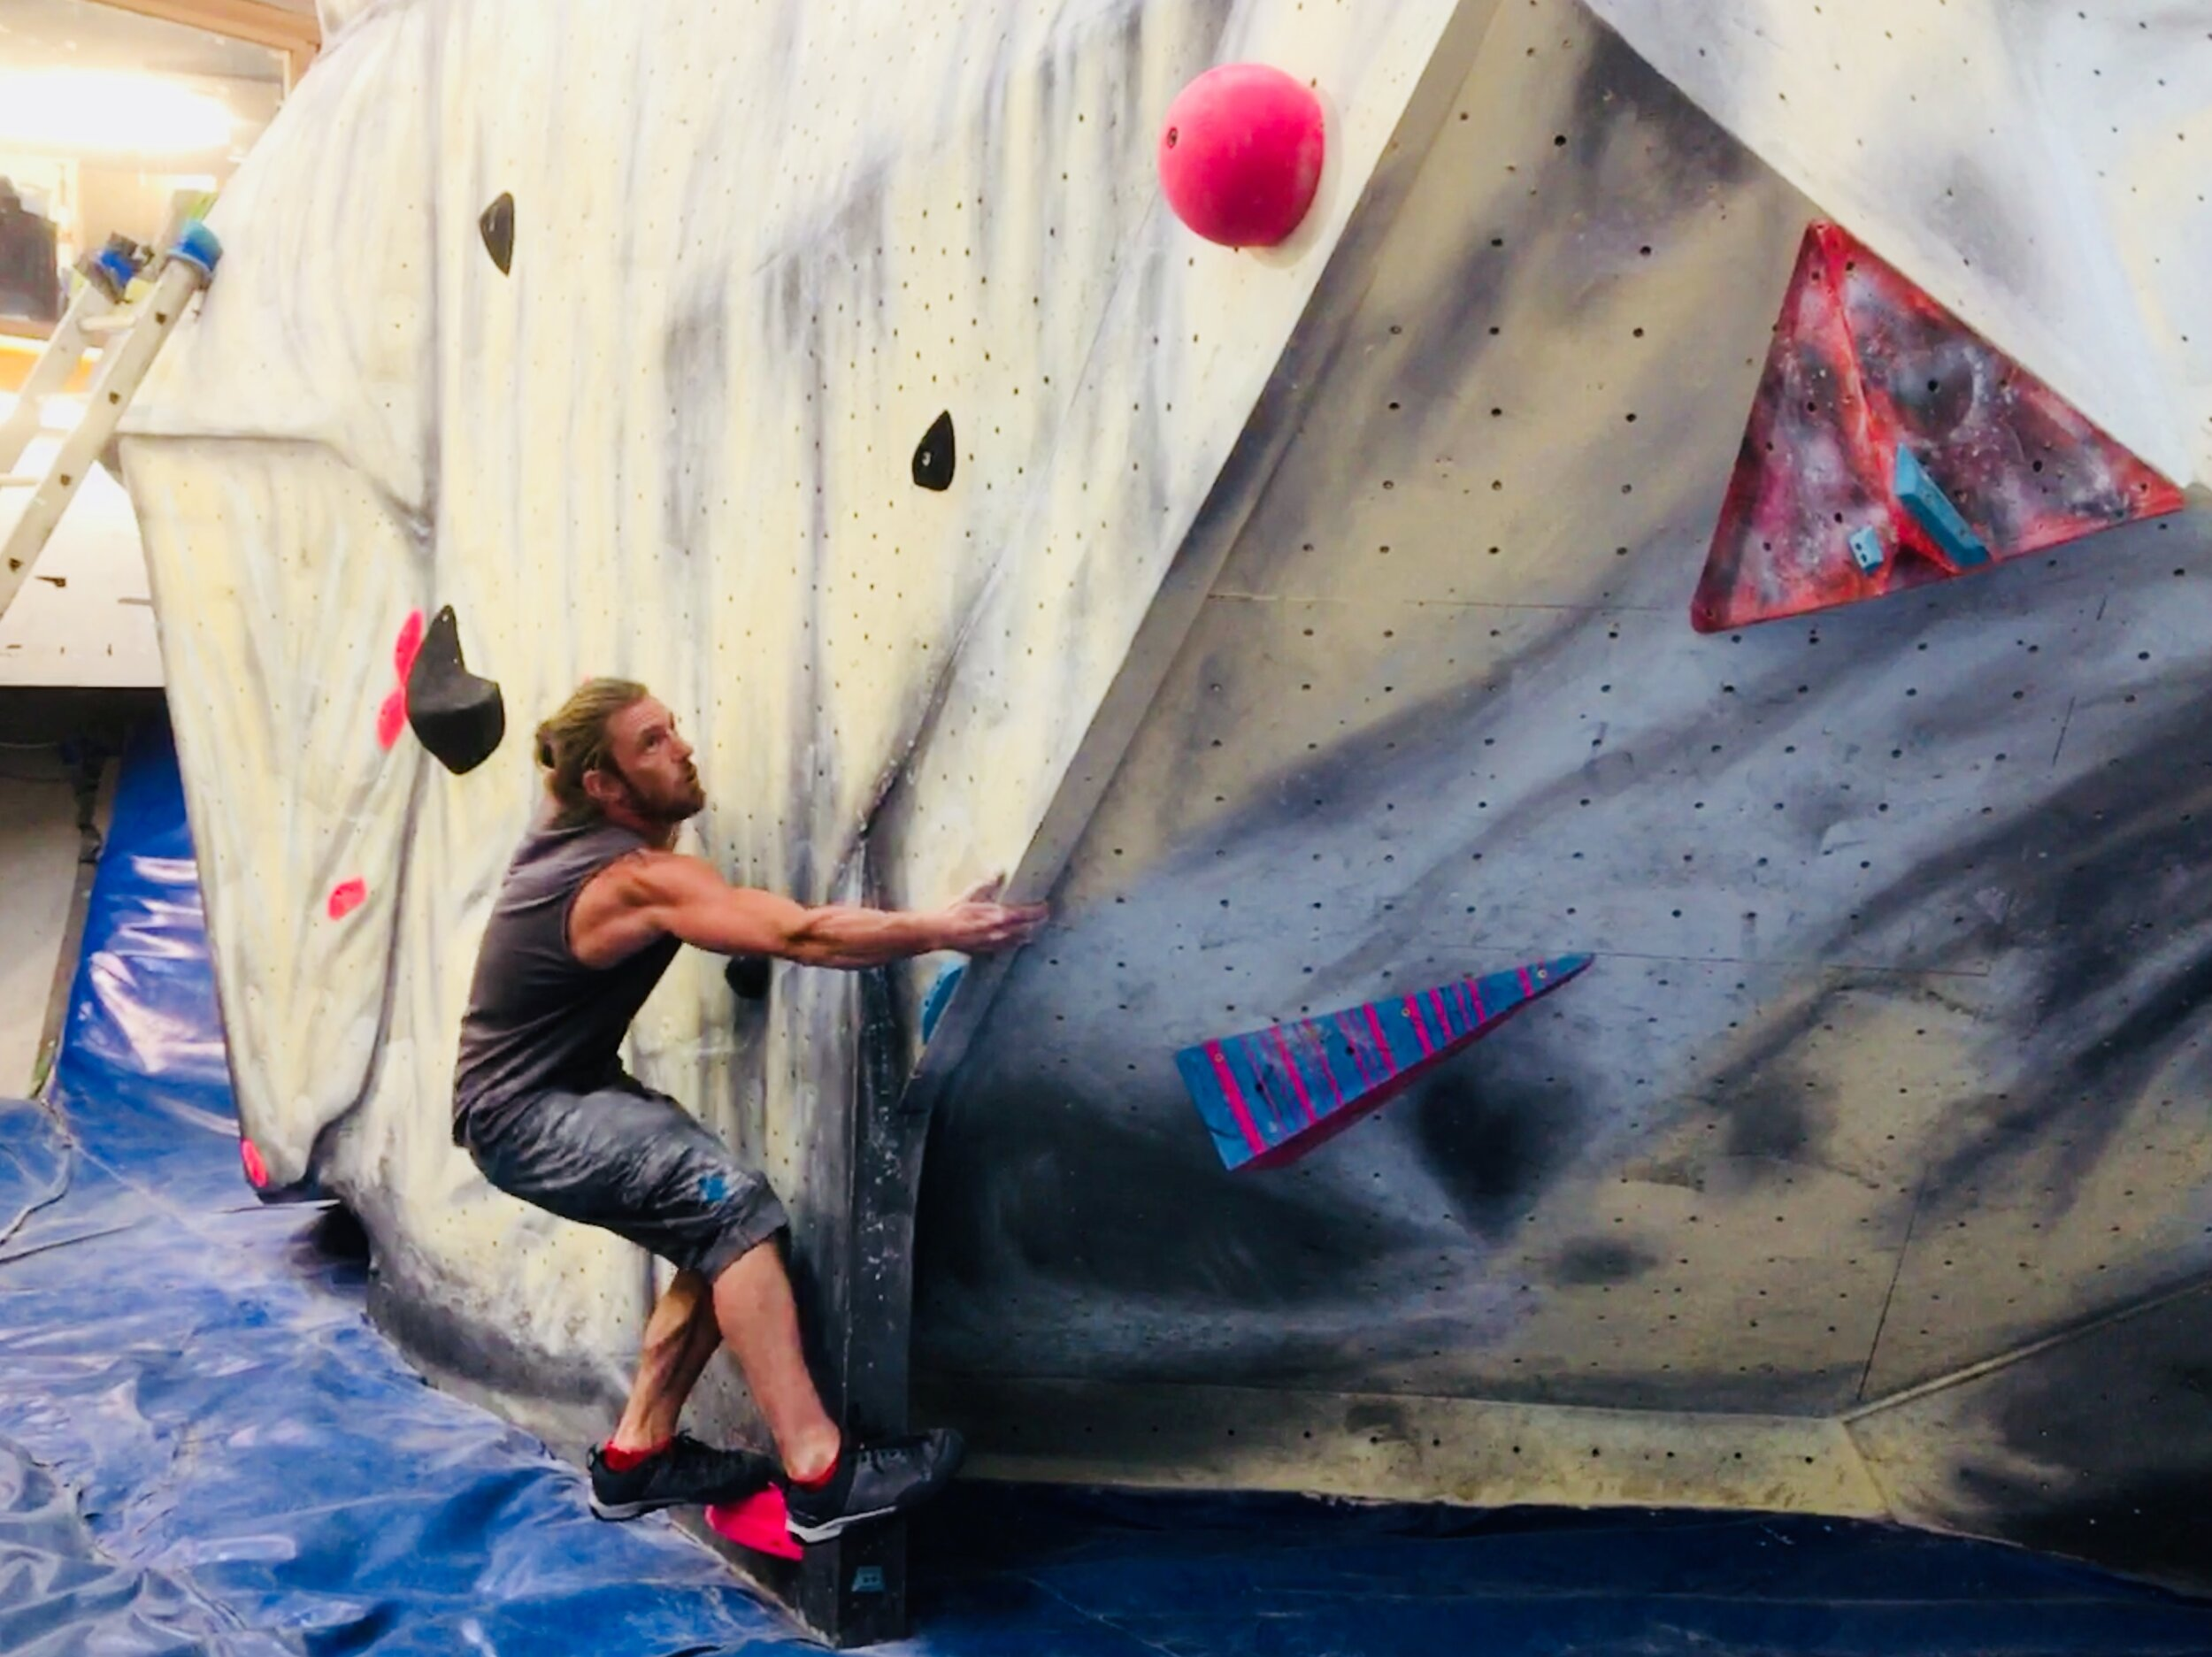 Quality Blocs - Set by professional route setters regularly.